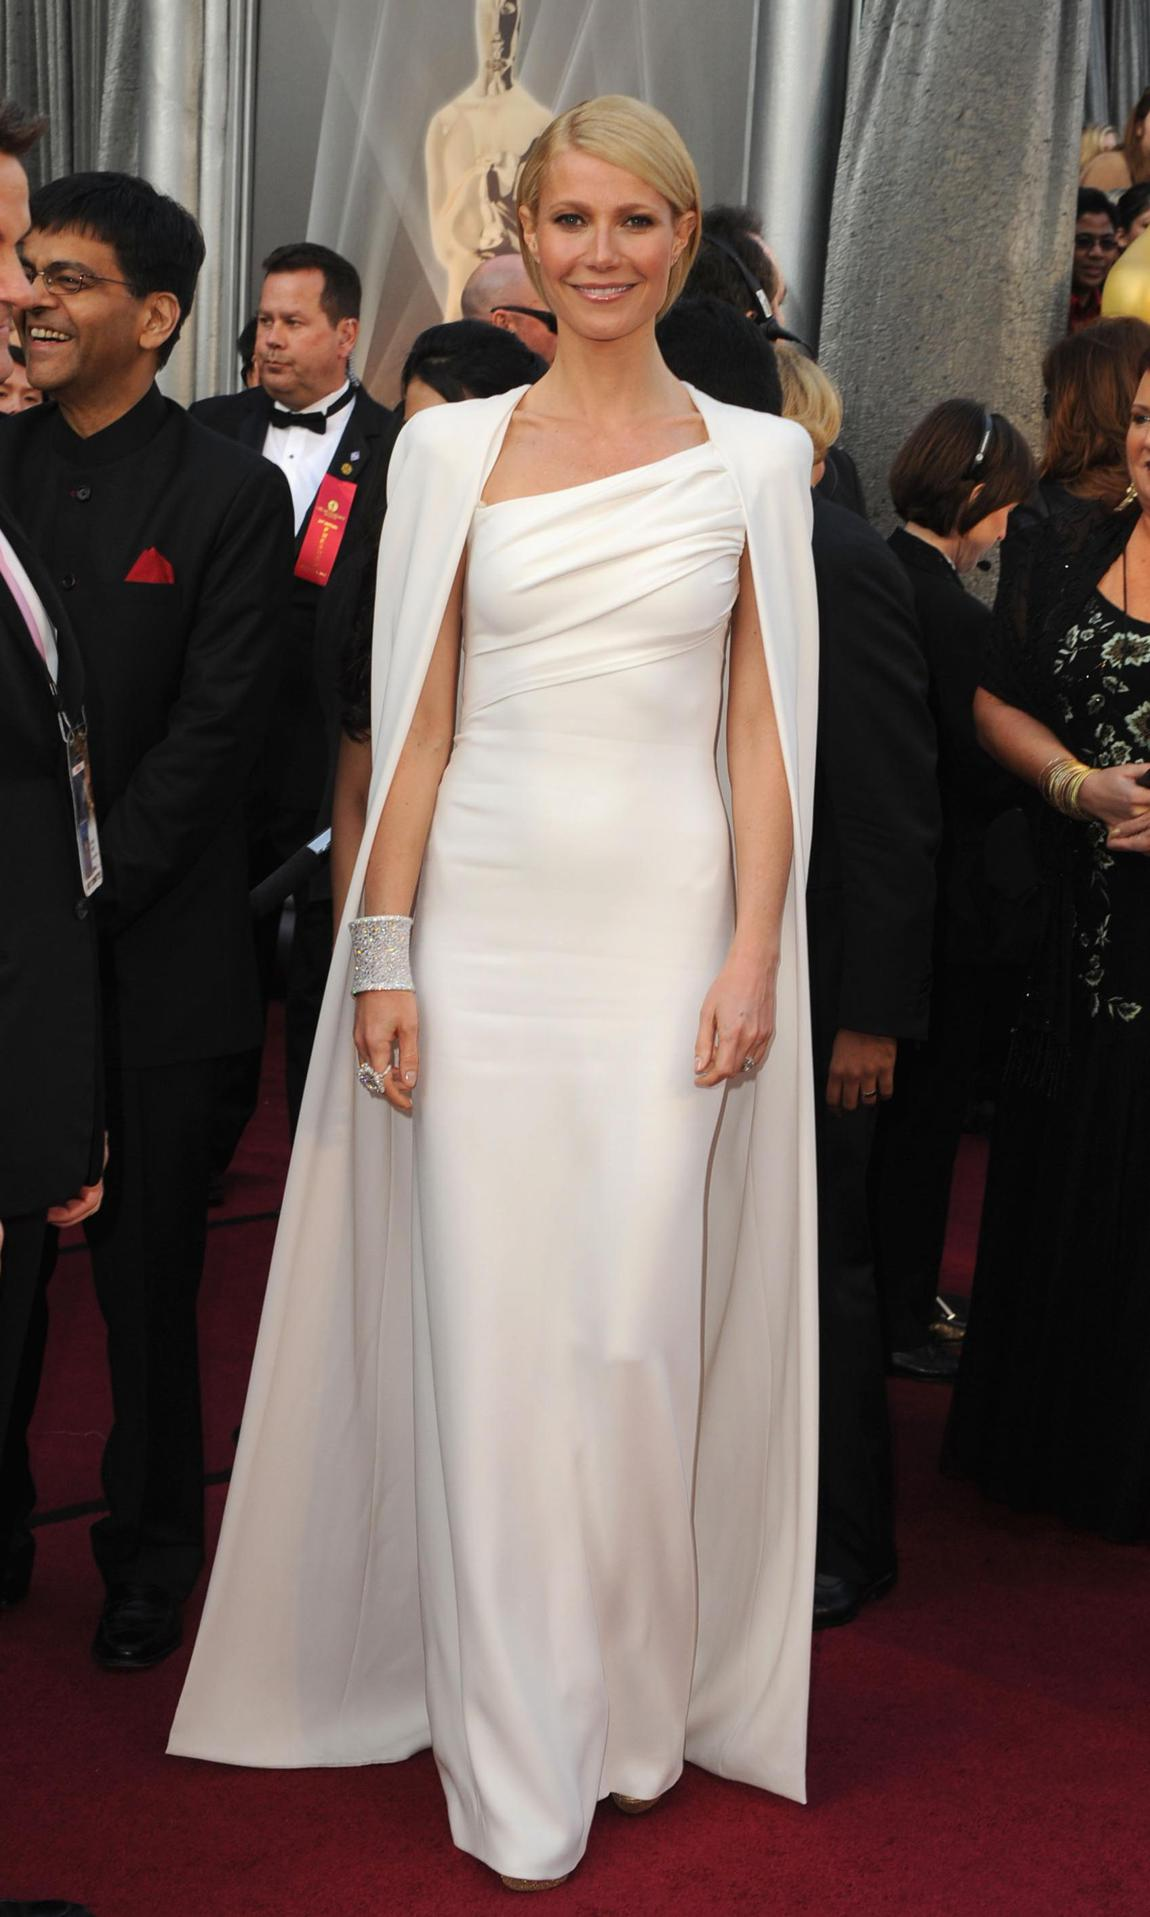 Gwyneth Paltrow in a white, caped gown byTom Ford